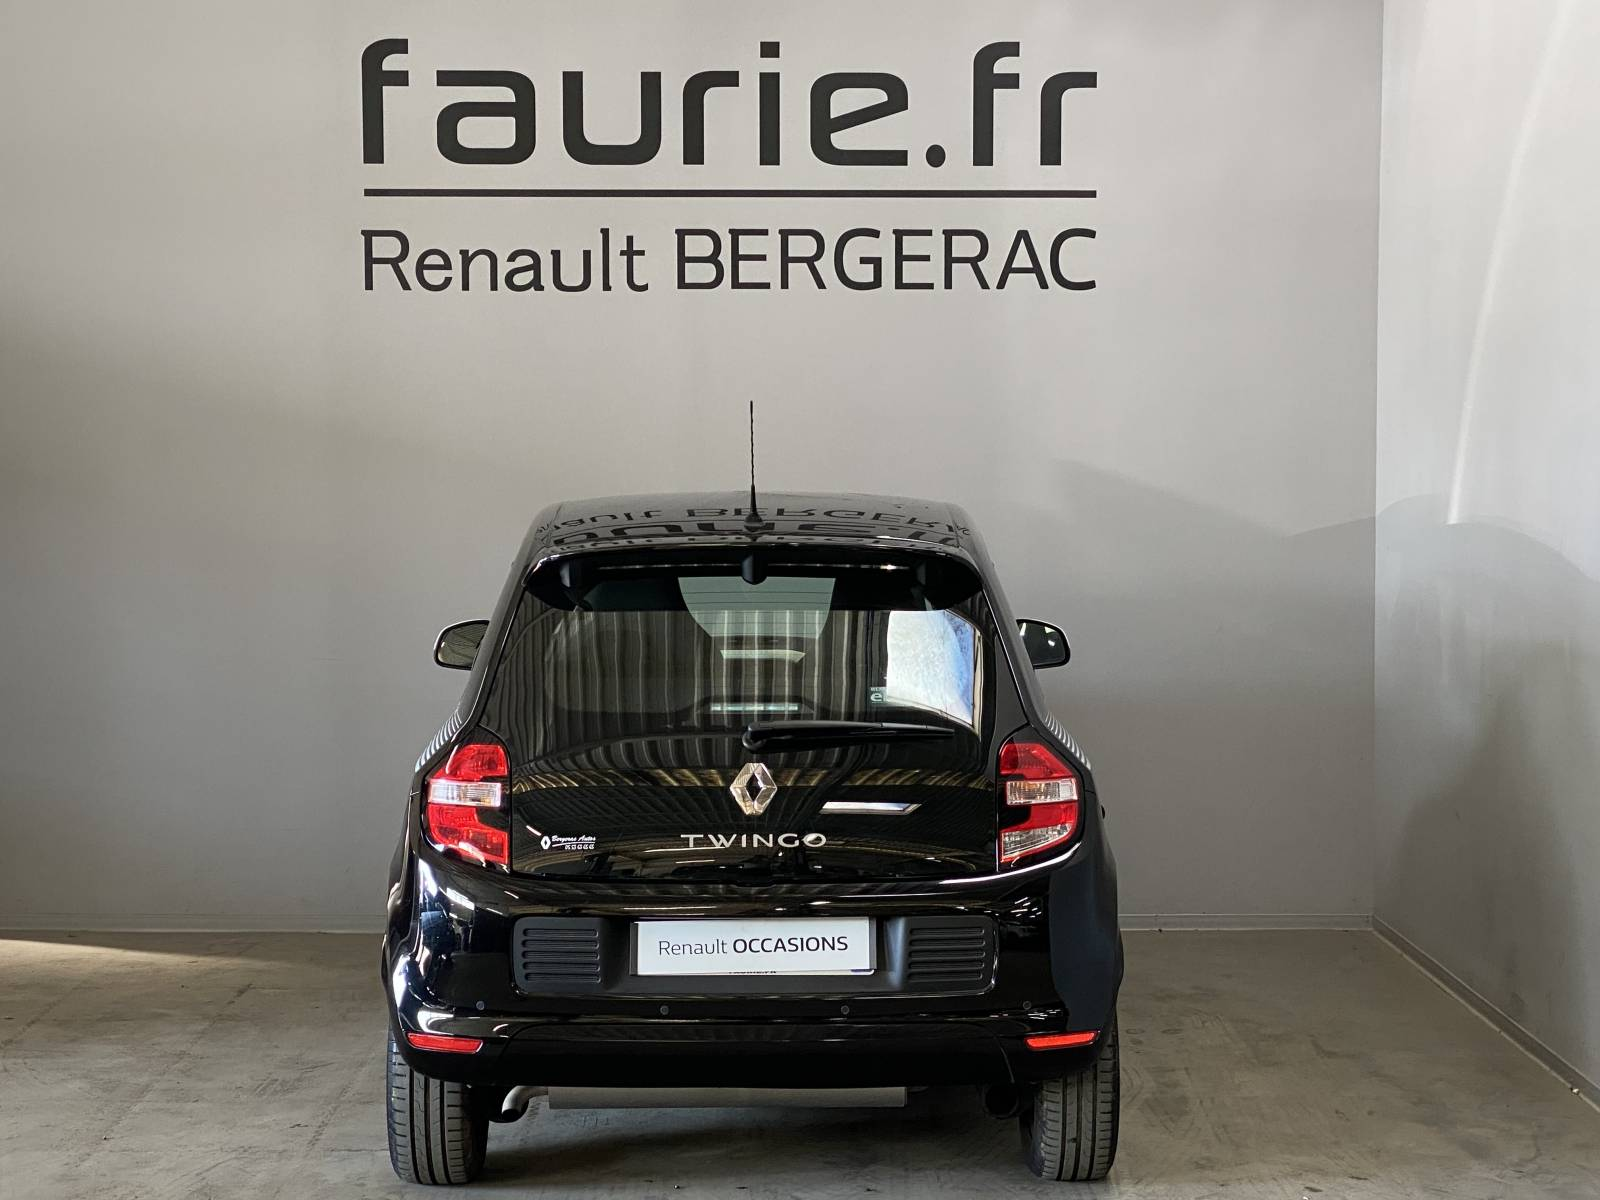 RENAULT Twingo III 0.9 TCe 90 Energy - véhicule d'occasion - Site Internet Faurie - Renault - Faurie Auto Bergerac - 24100 - Bergerac - 6